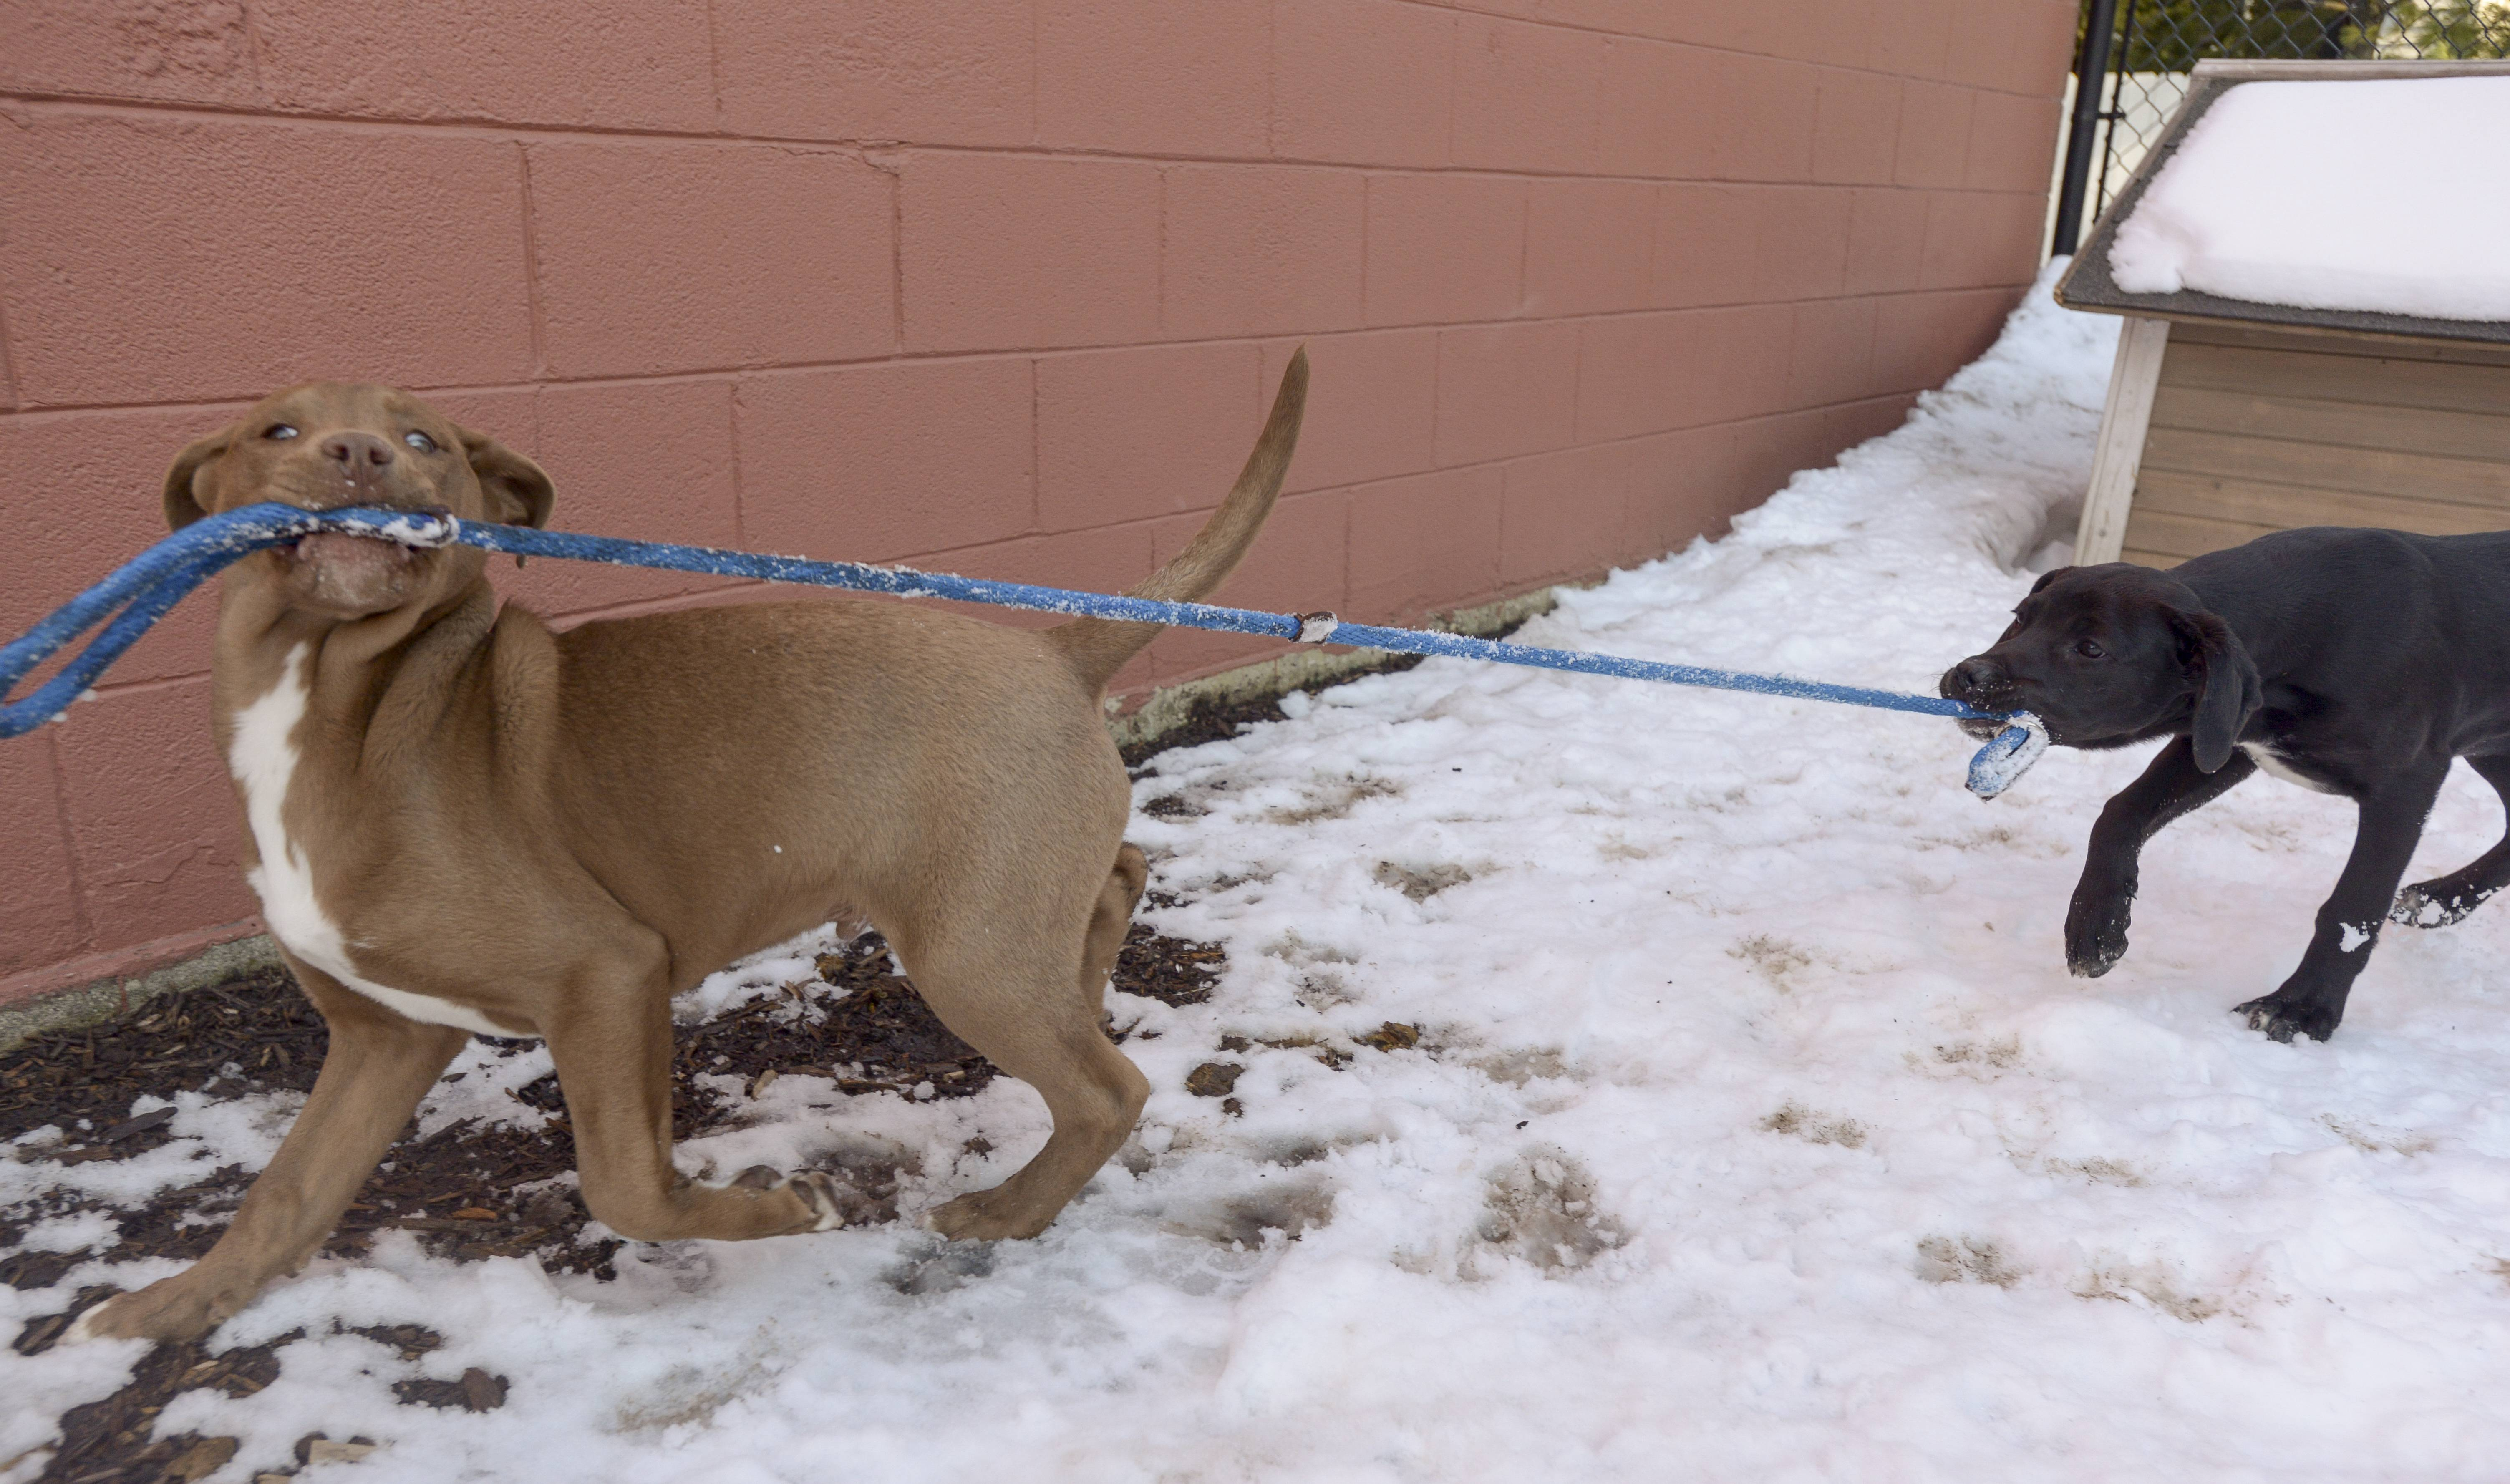 Rescue puppies play in the dog run at the Dog Patch in Naperville. The Dog Patch only offers rescued dogs and cats for adoption. Animal welfare groups are hoping suburban communities follow Chicago's lead and ban the same of dogs from for-profit breeders.